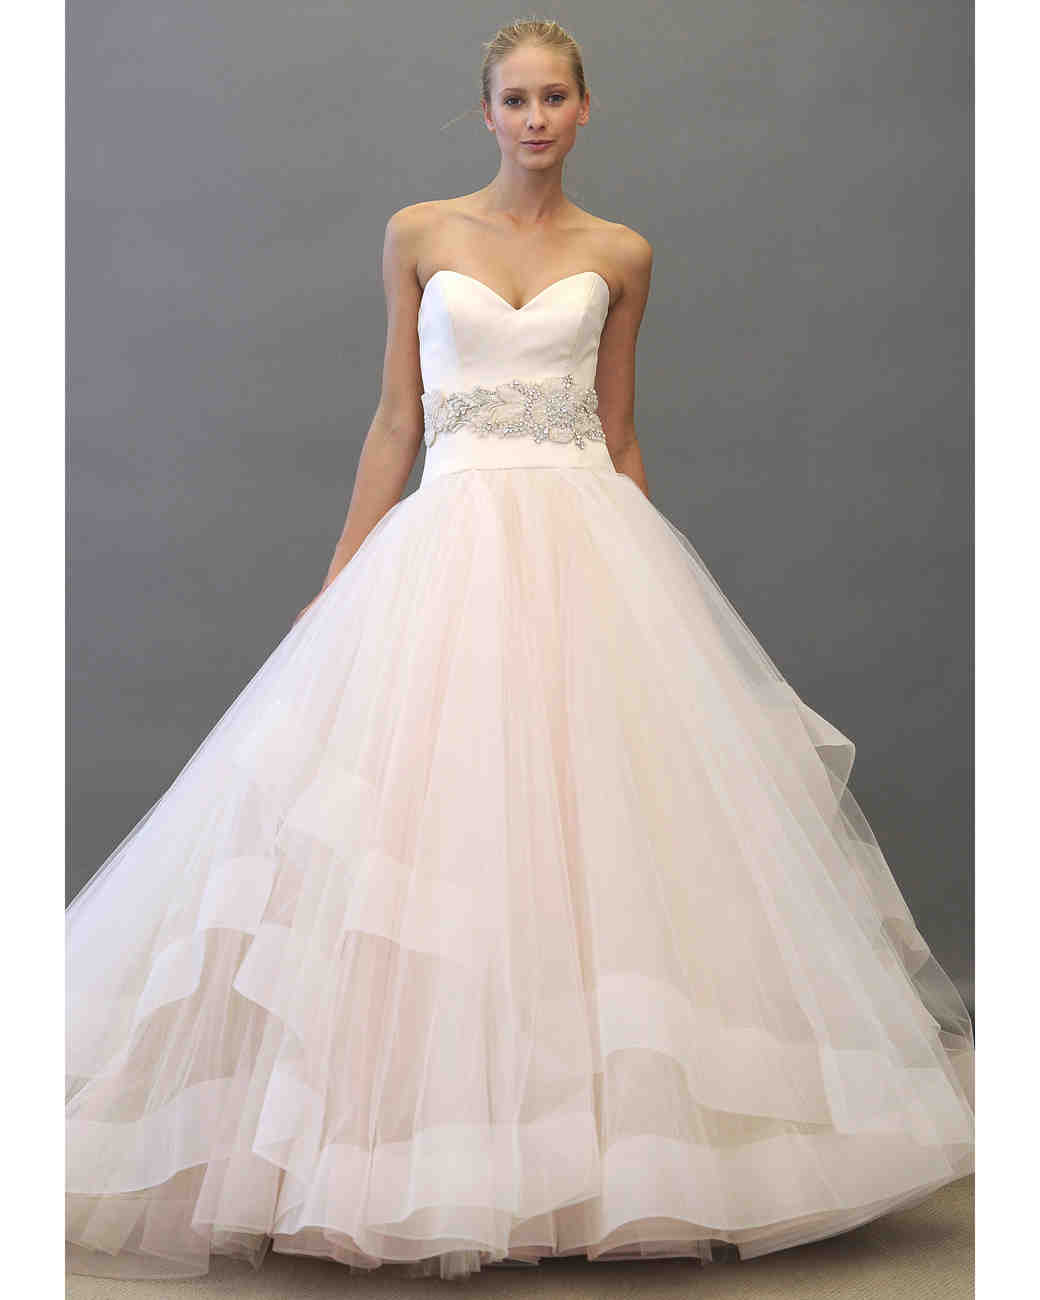 Enchanting Lazaro Ball Gown Model - Top Wedding Gowns ...